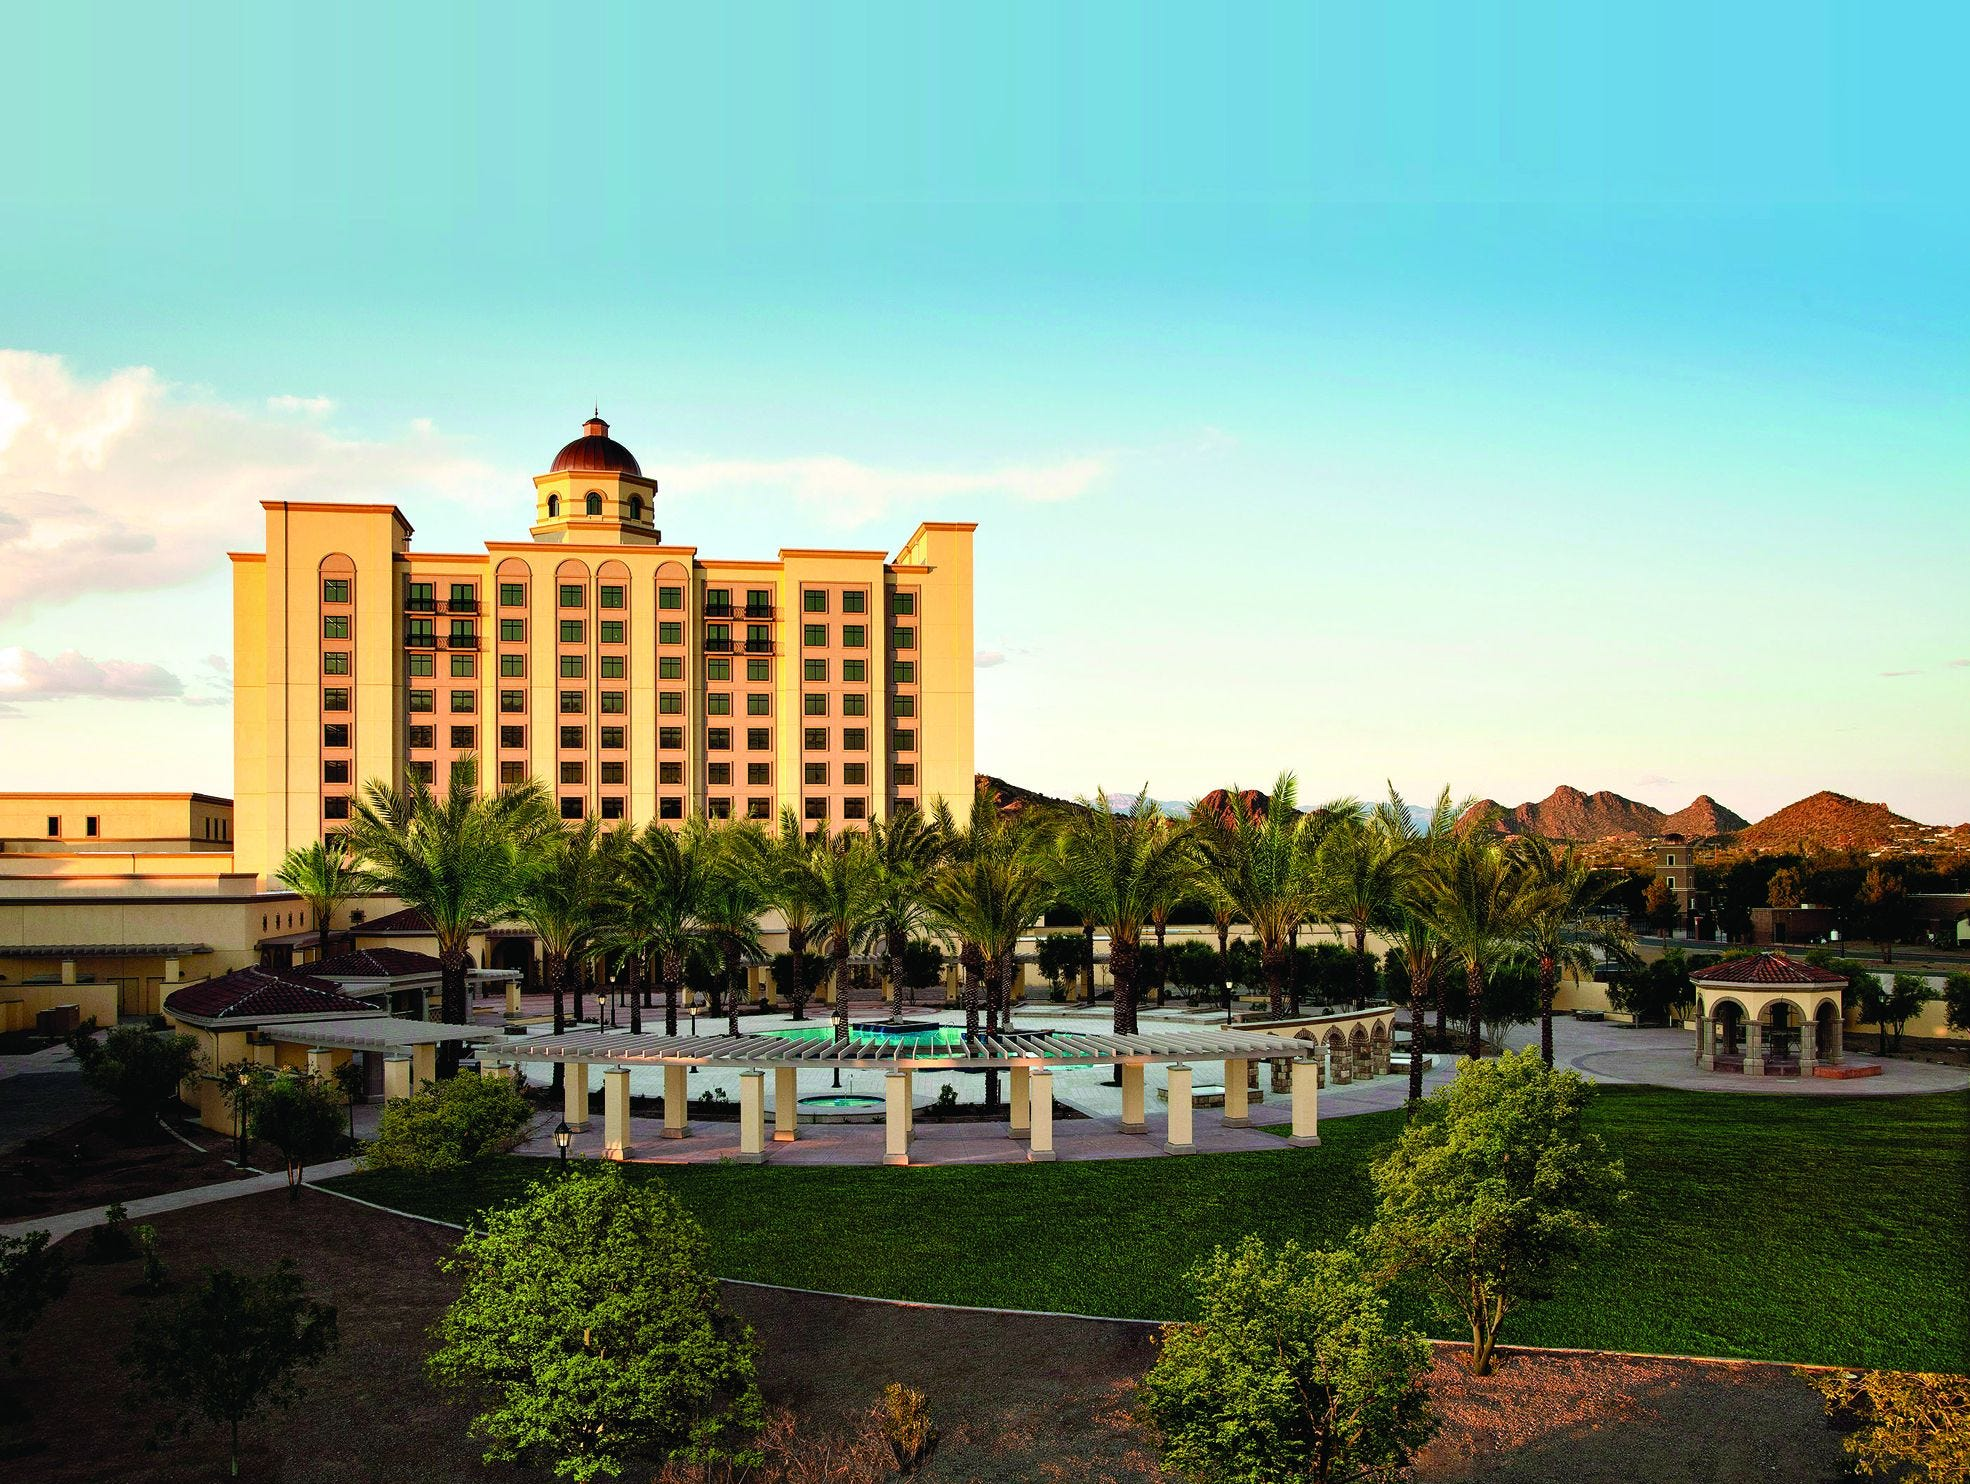 No. 99: Casino del Sol Resort | Casino resort operated by Pascua Yaqui Tribe | 2019 employees: 1,617 | 2018 employees: 1,625 | Ownership: Tribal | Headquarters: Tucson | www.casinodelsol.com